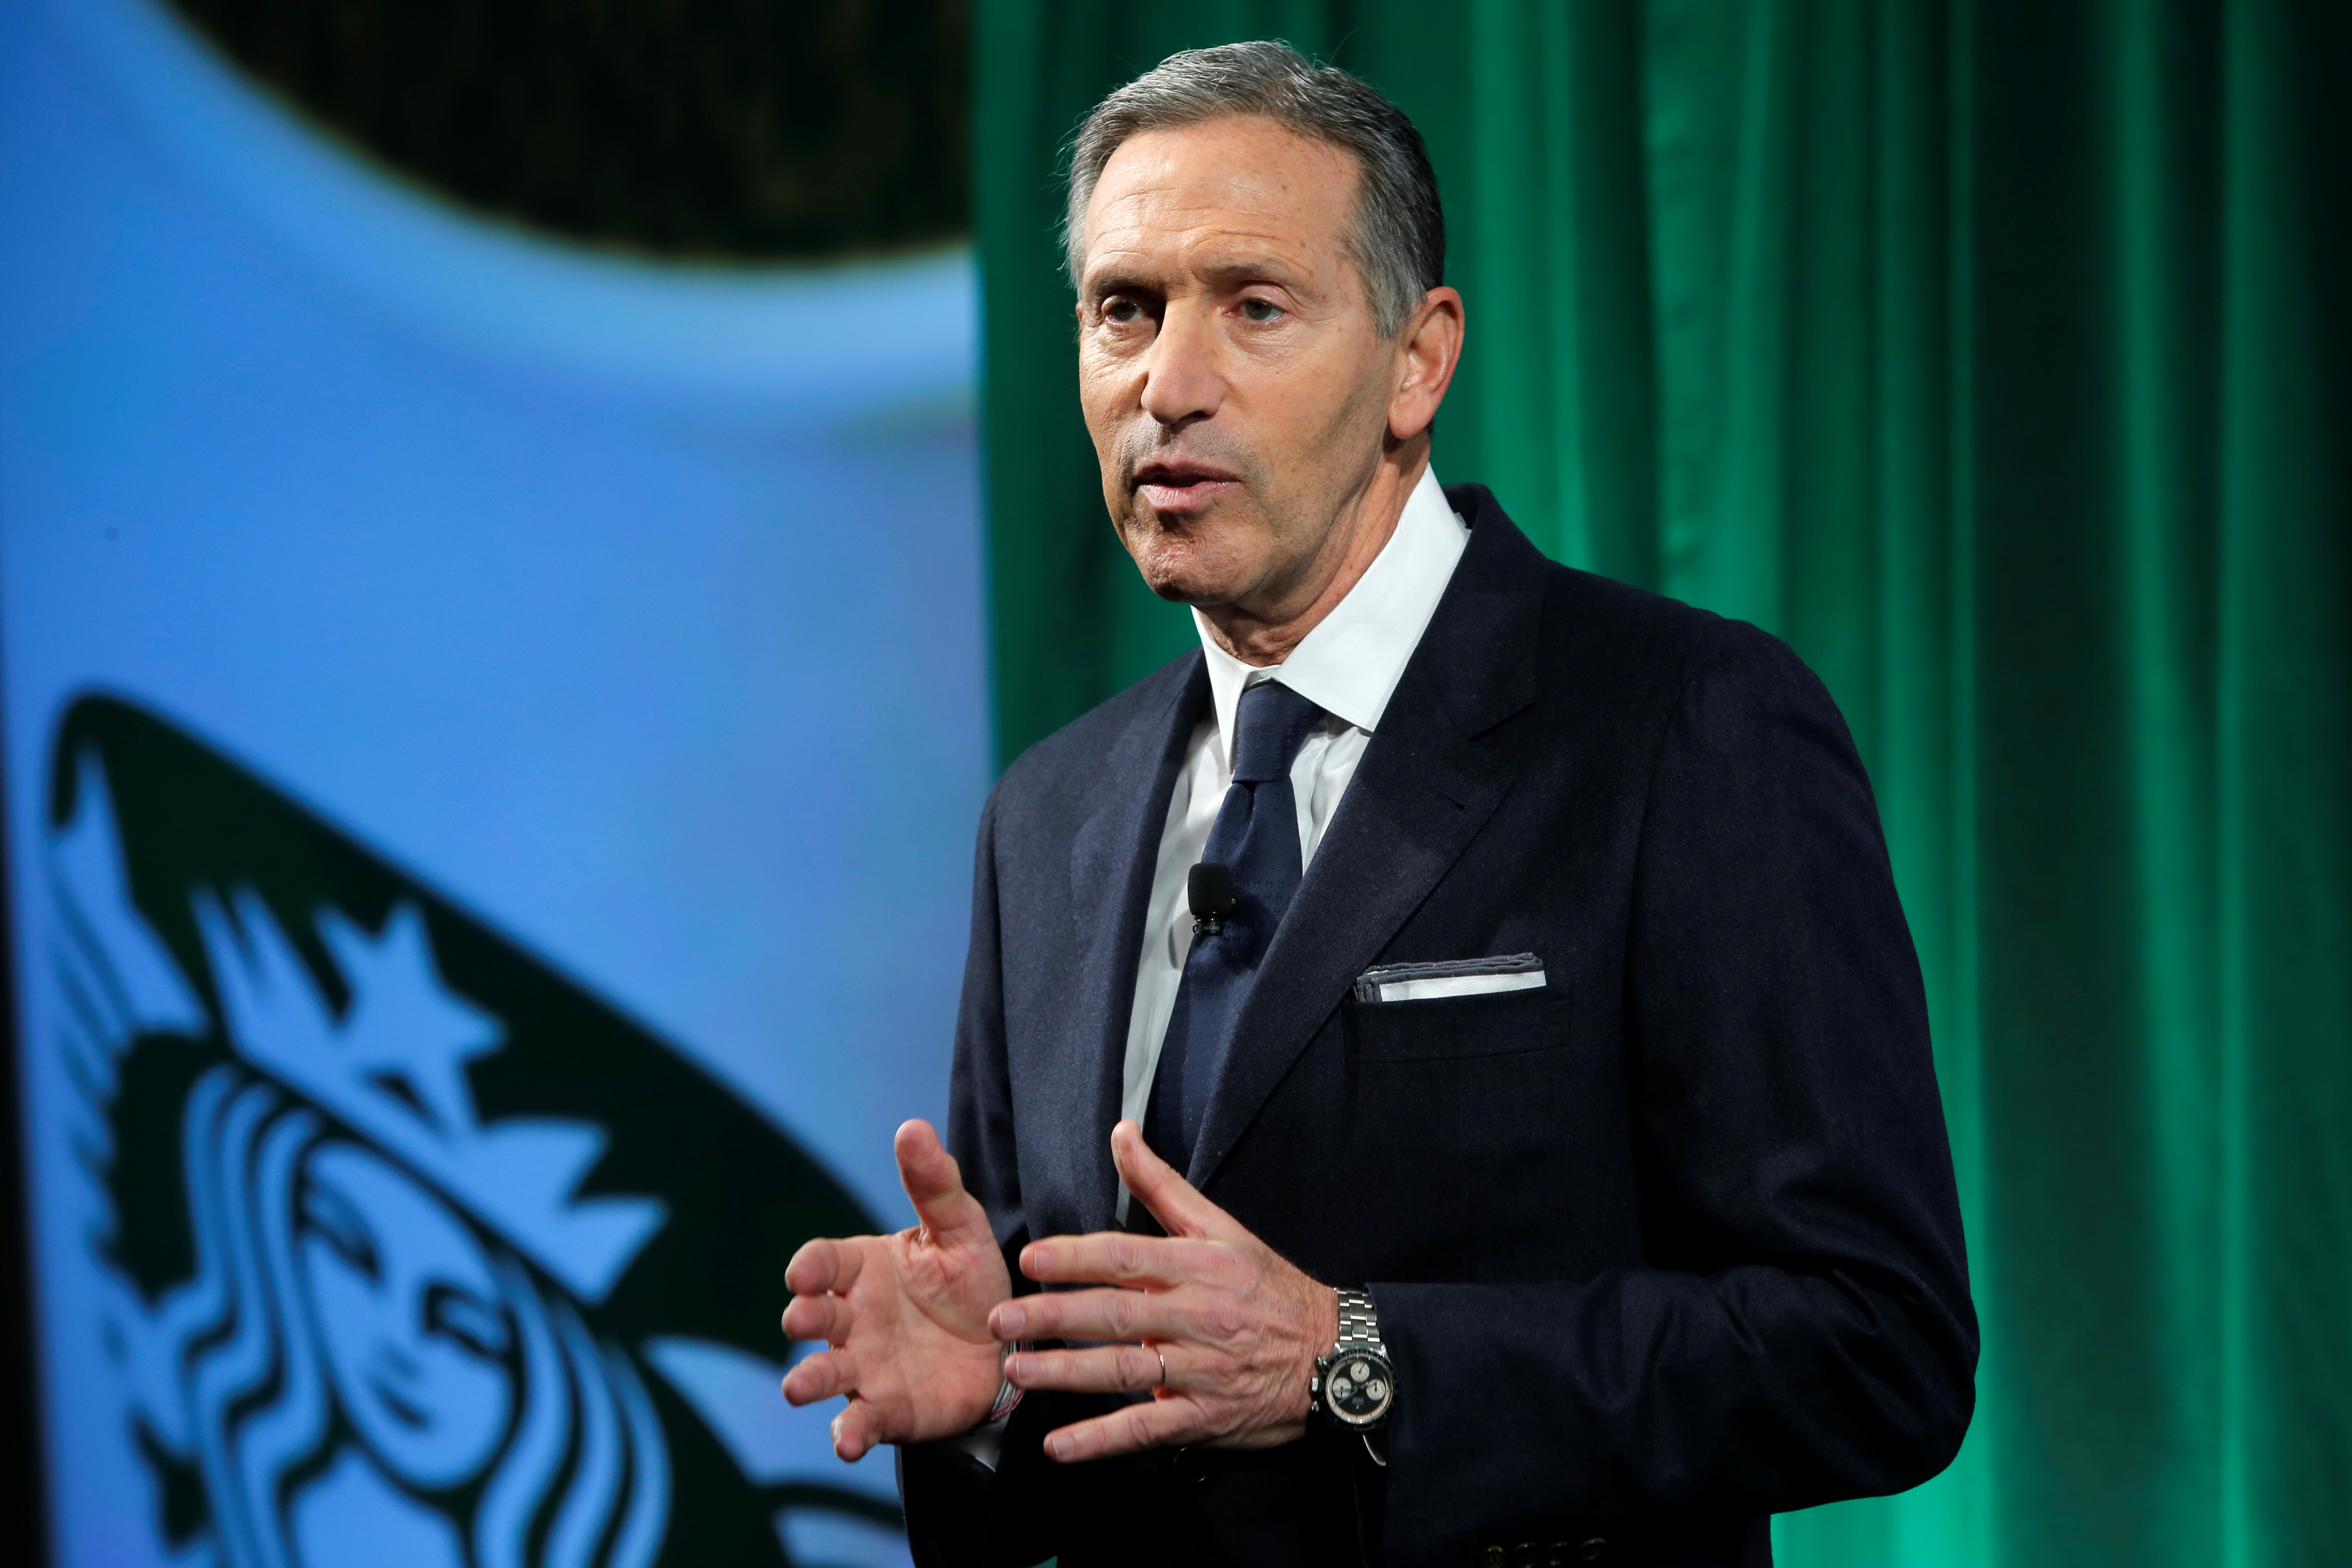 Possible presidential bid by ex-Starbucks CEO has some Democrats fuming